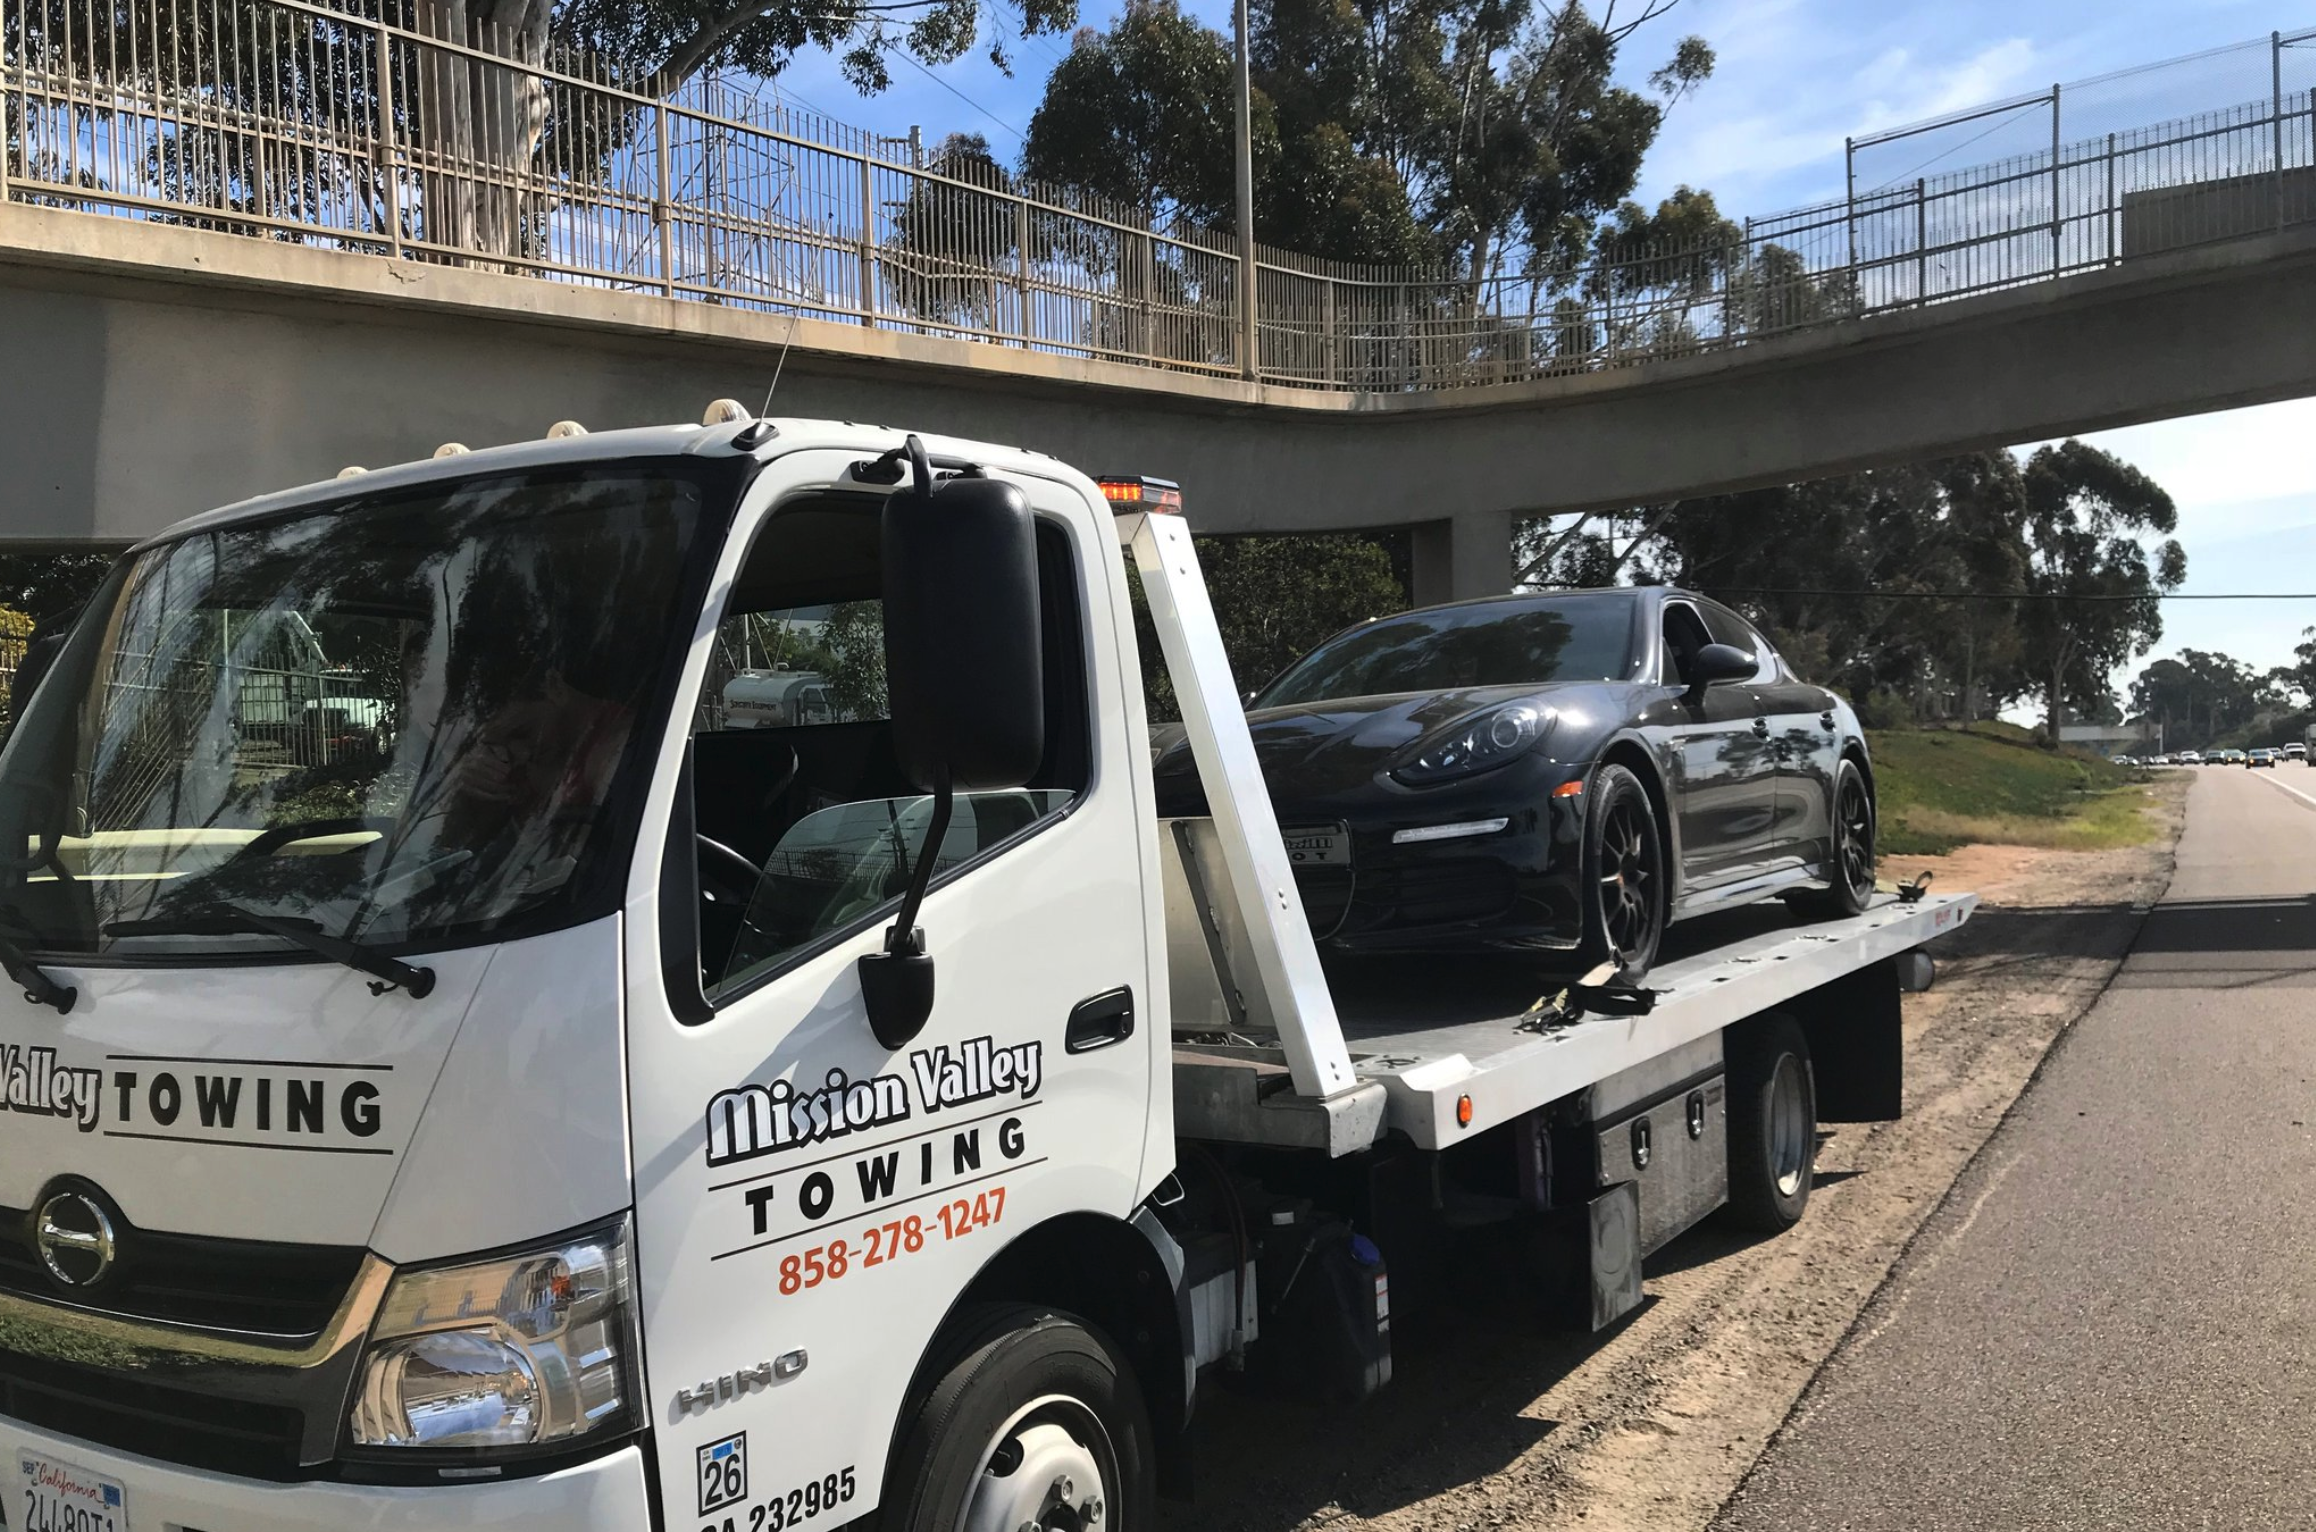 How a Towing Company Helps Broken Cars on the Side of the Freeway